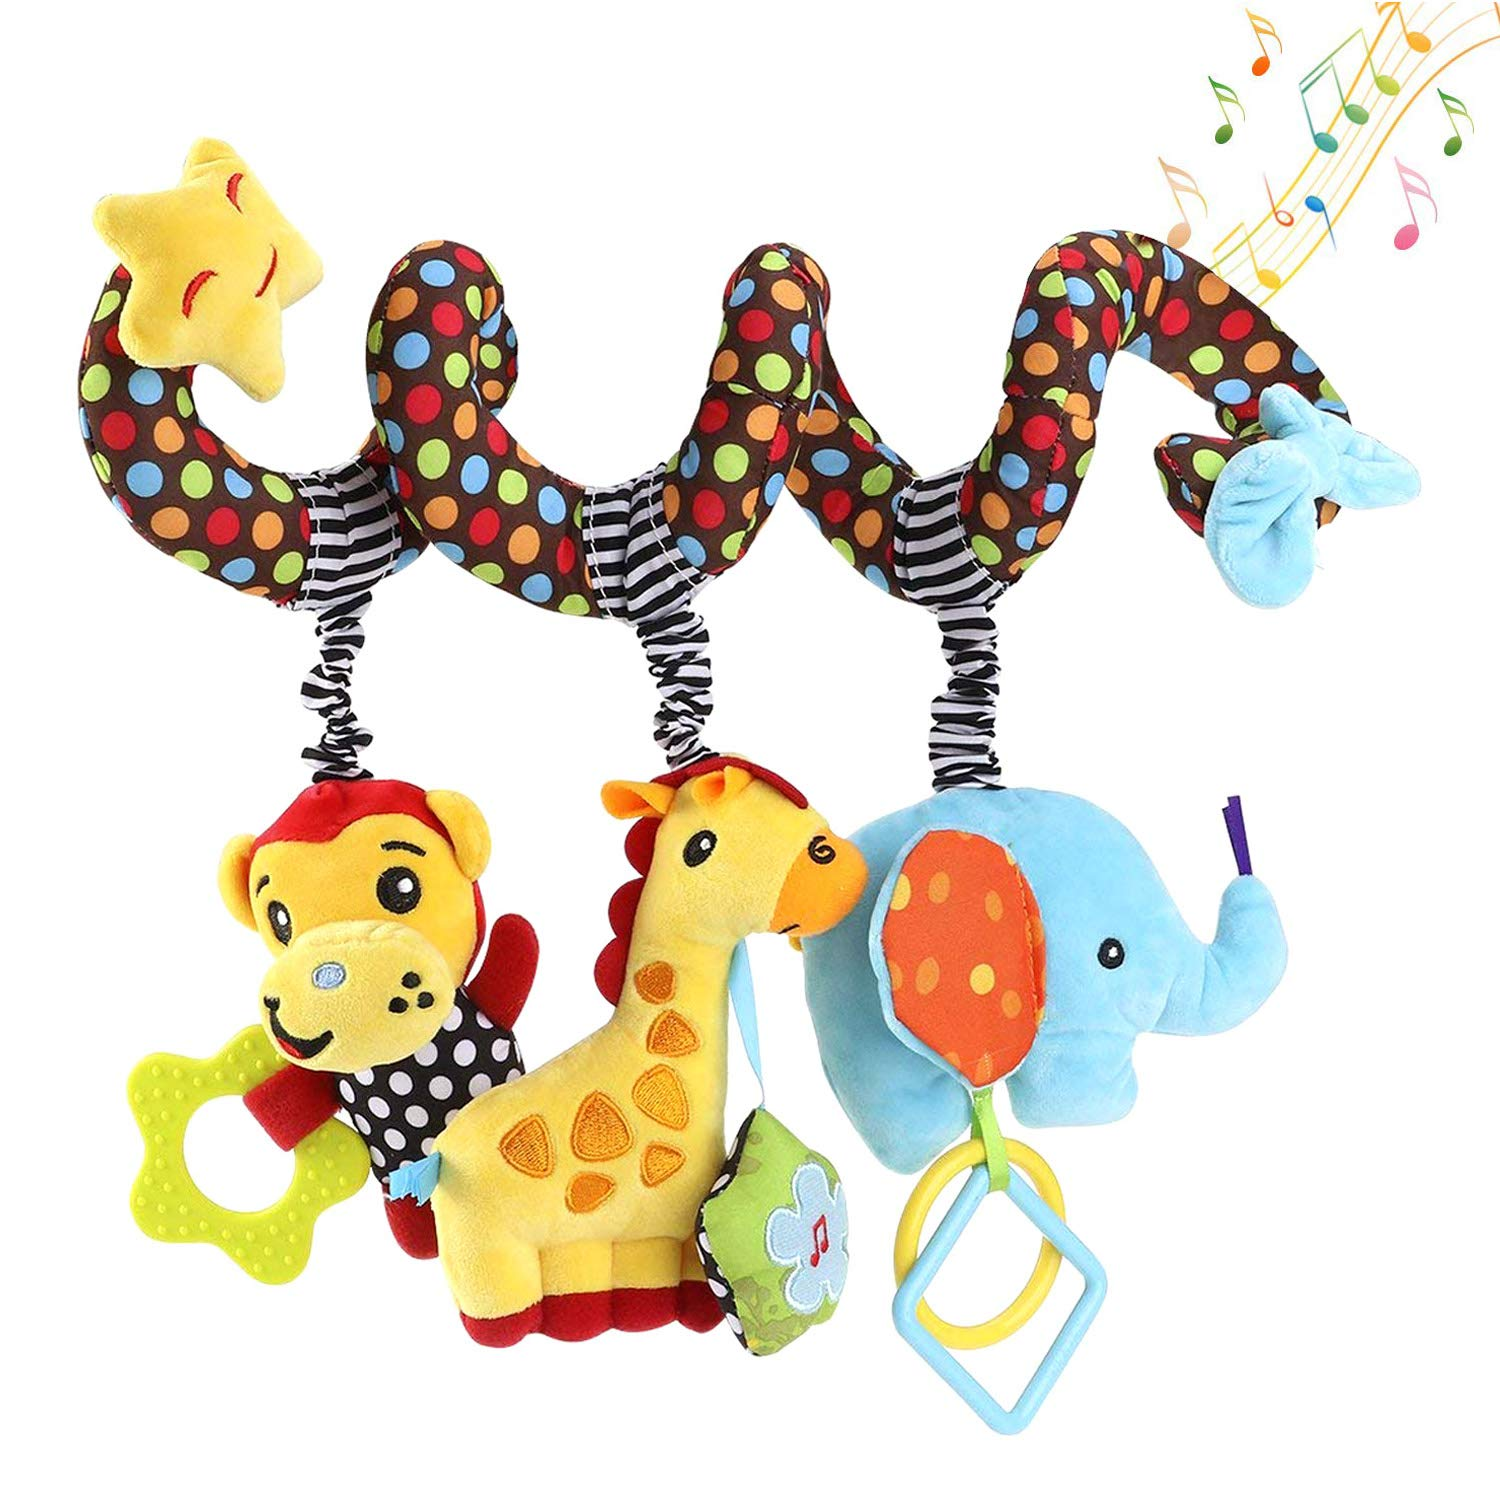 willway Hanging Toys for Car Seat Crib Mobile, Infant Baby Spiral Plush  Toys for Crib Bed Stroller Car Seat Bar.